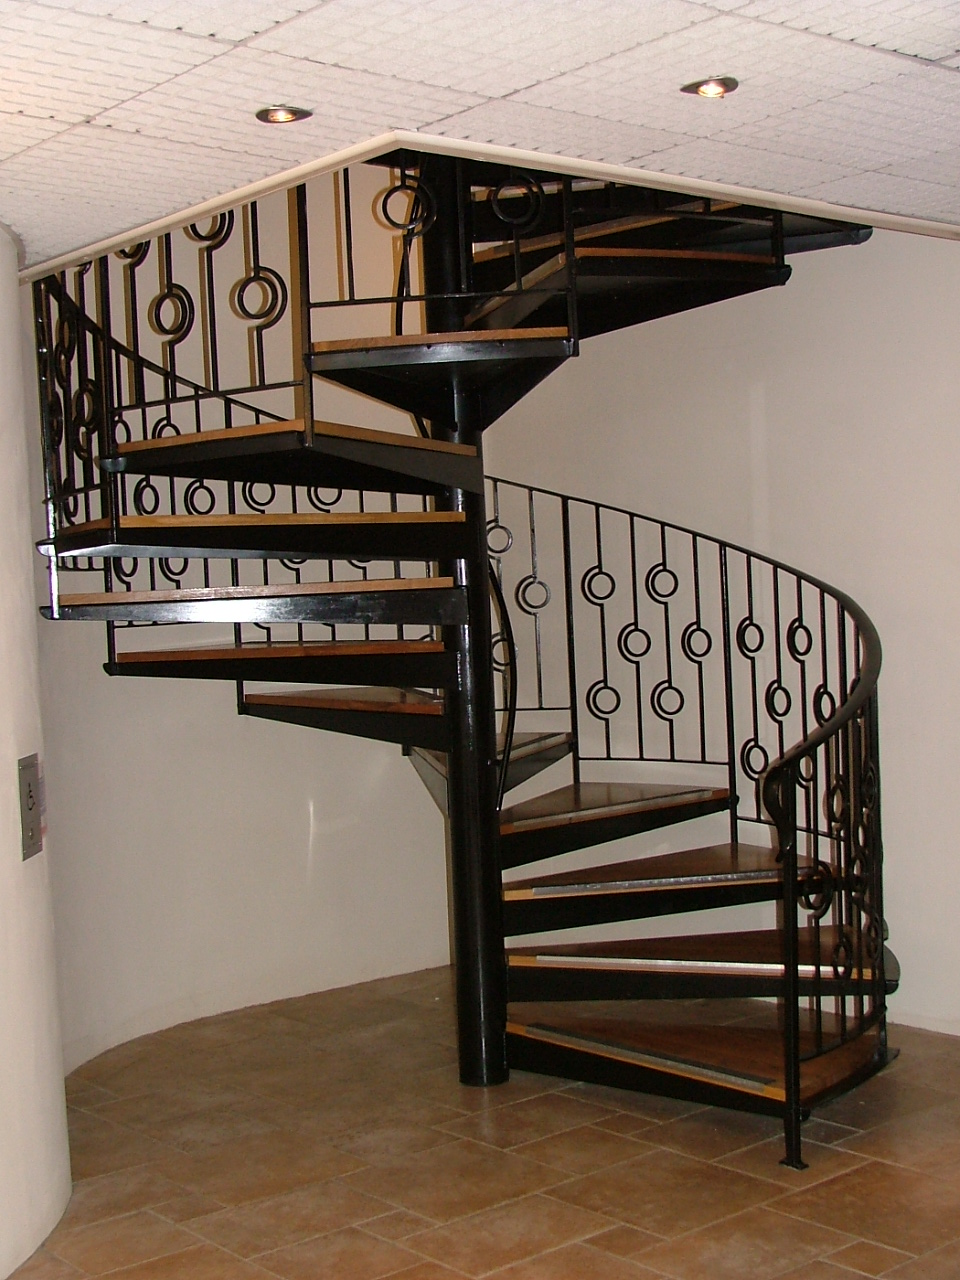 Pin Attic Spiral Stairs Spireco on Pinterest